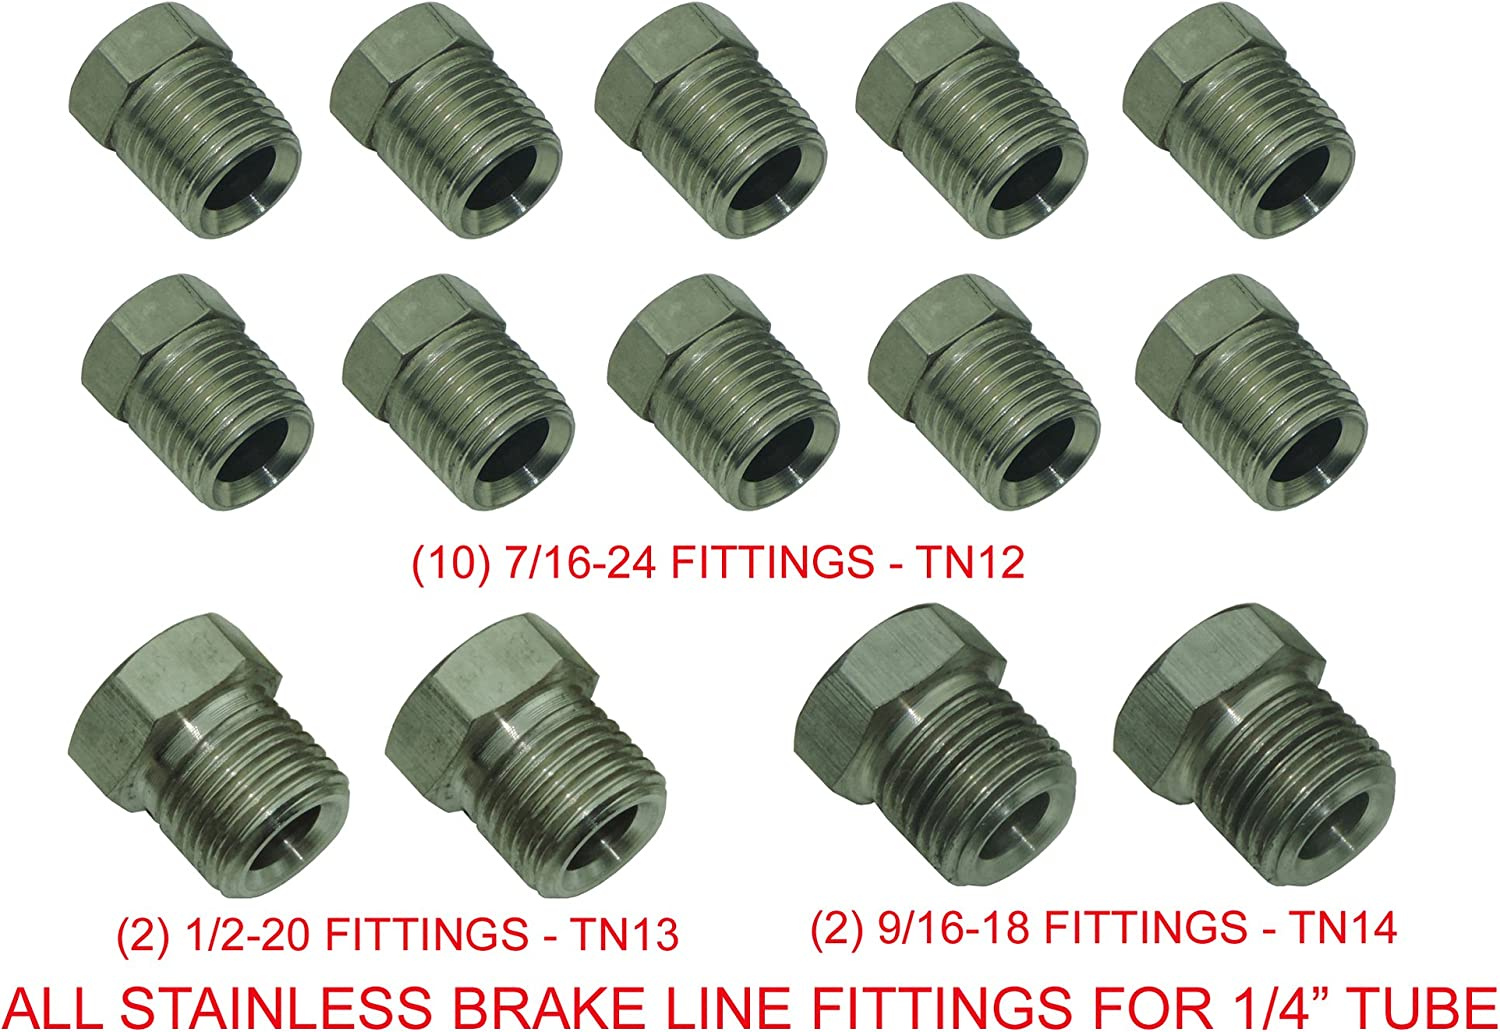 Pack of 12 7//16-24 Stainless Steel Fittings for 1//4 tube